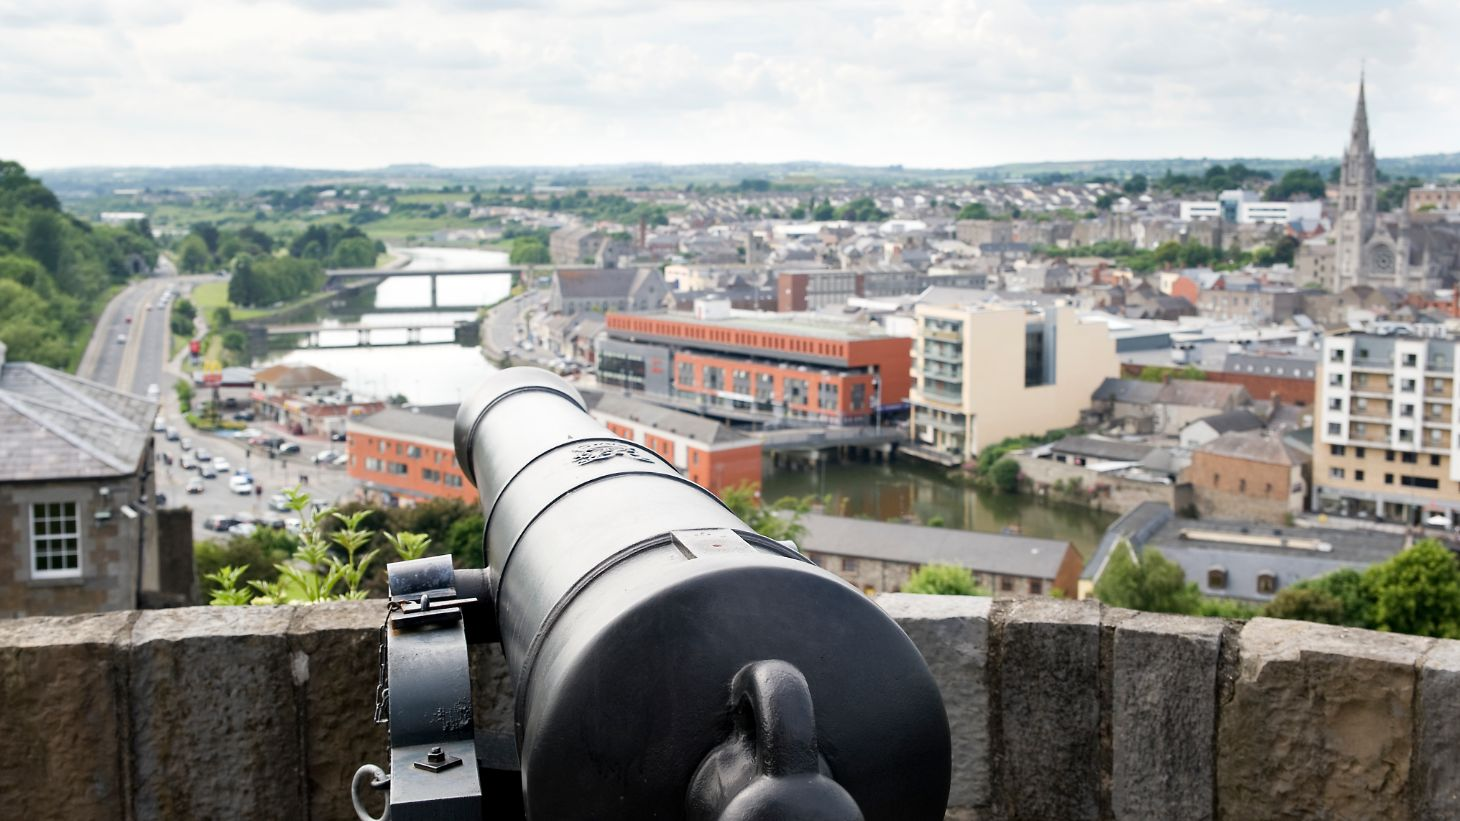 Get a birds eye view of Drogheda from Millmount.